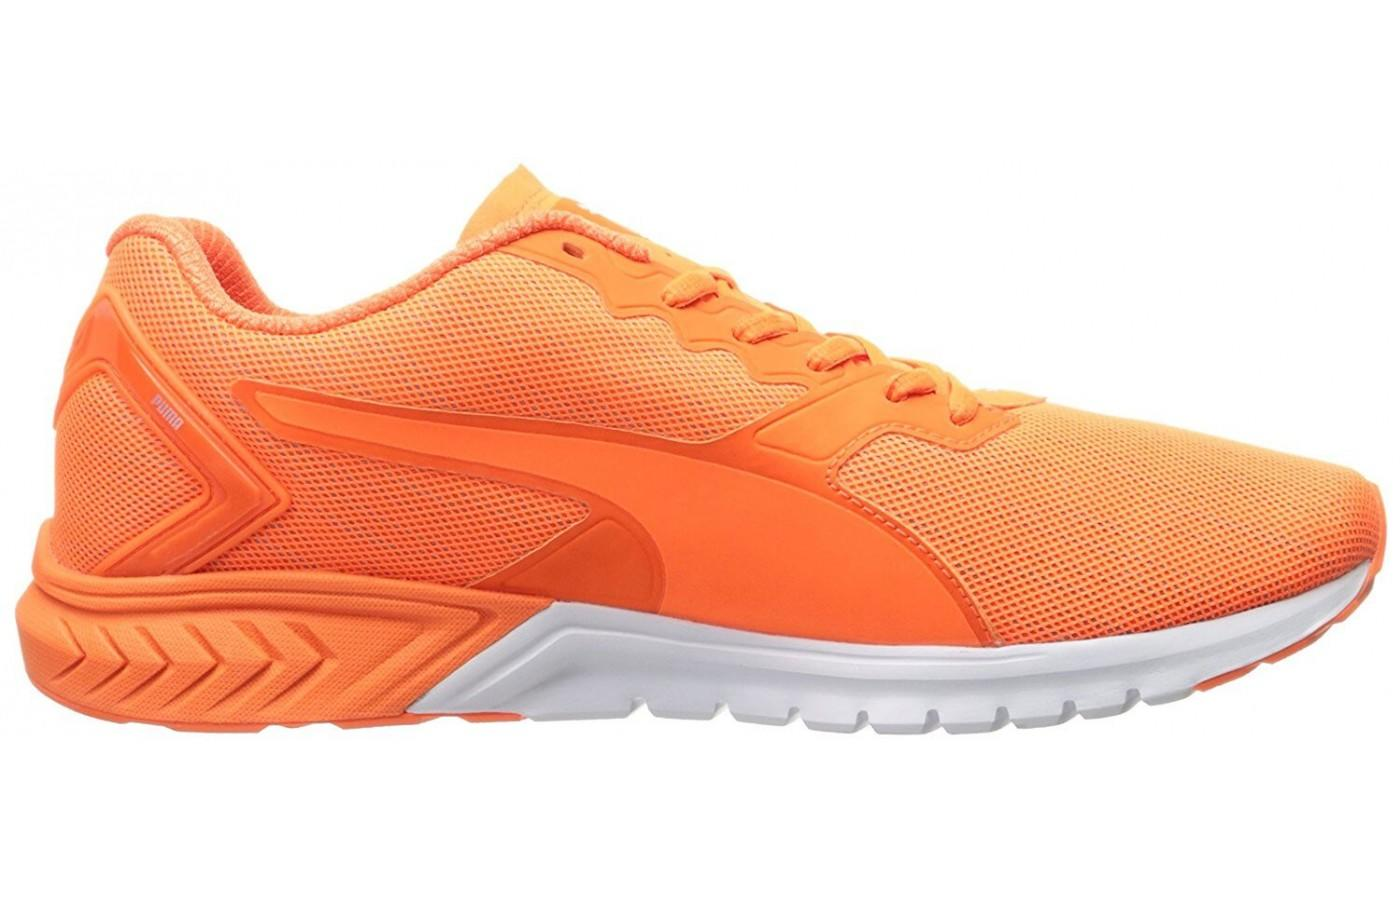 Runners liked the sleek, stylish look of this shoe.